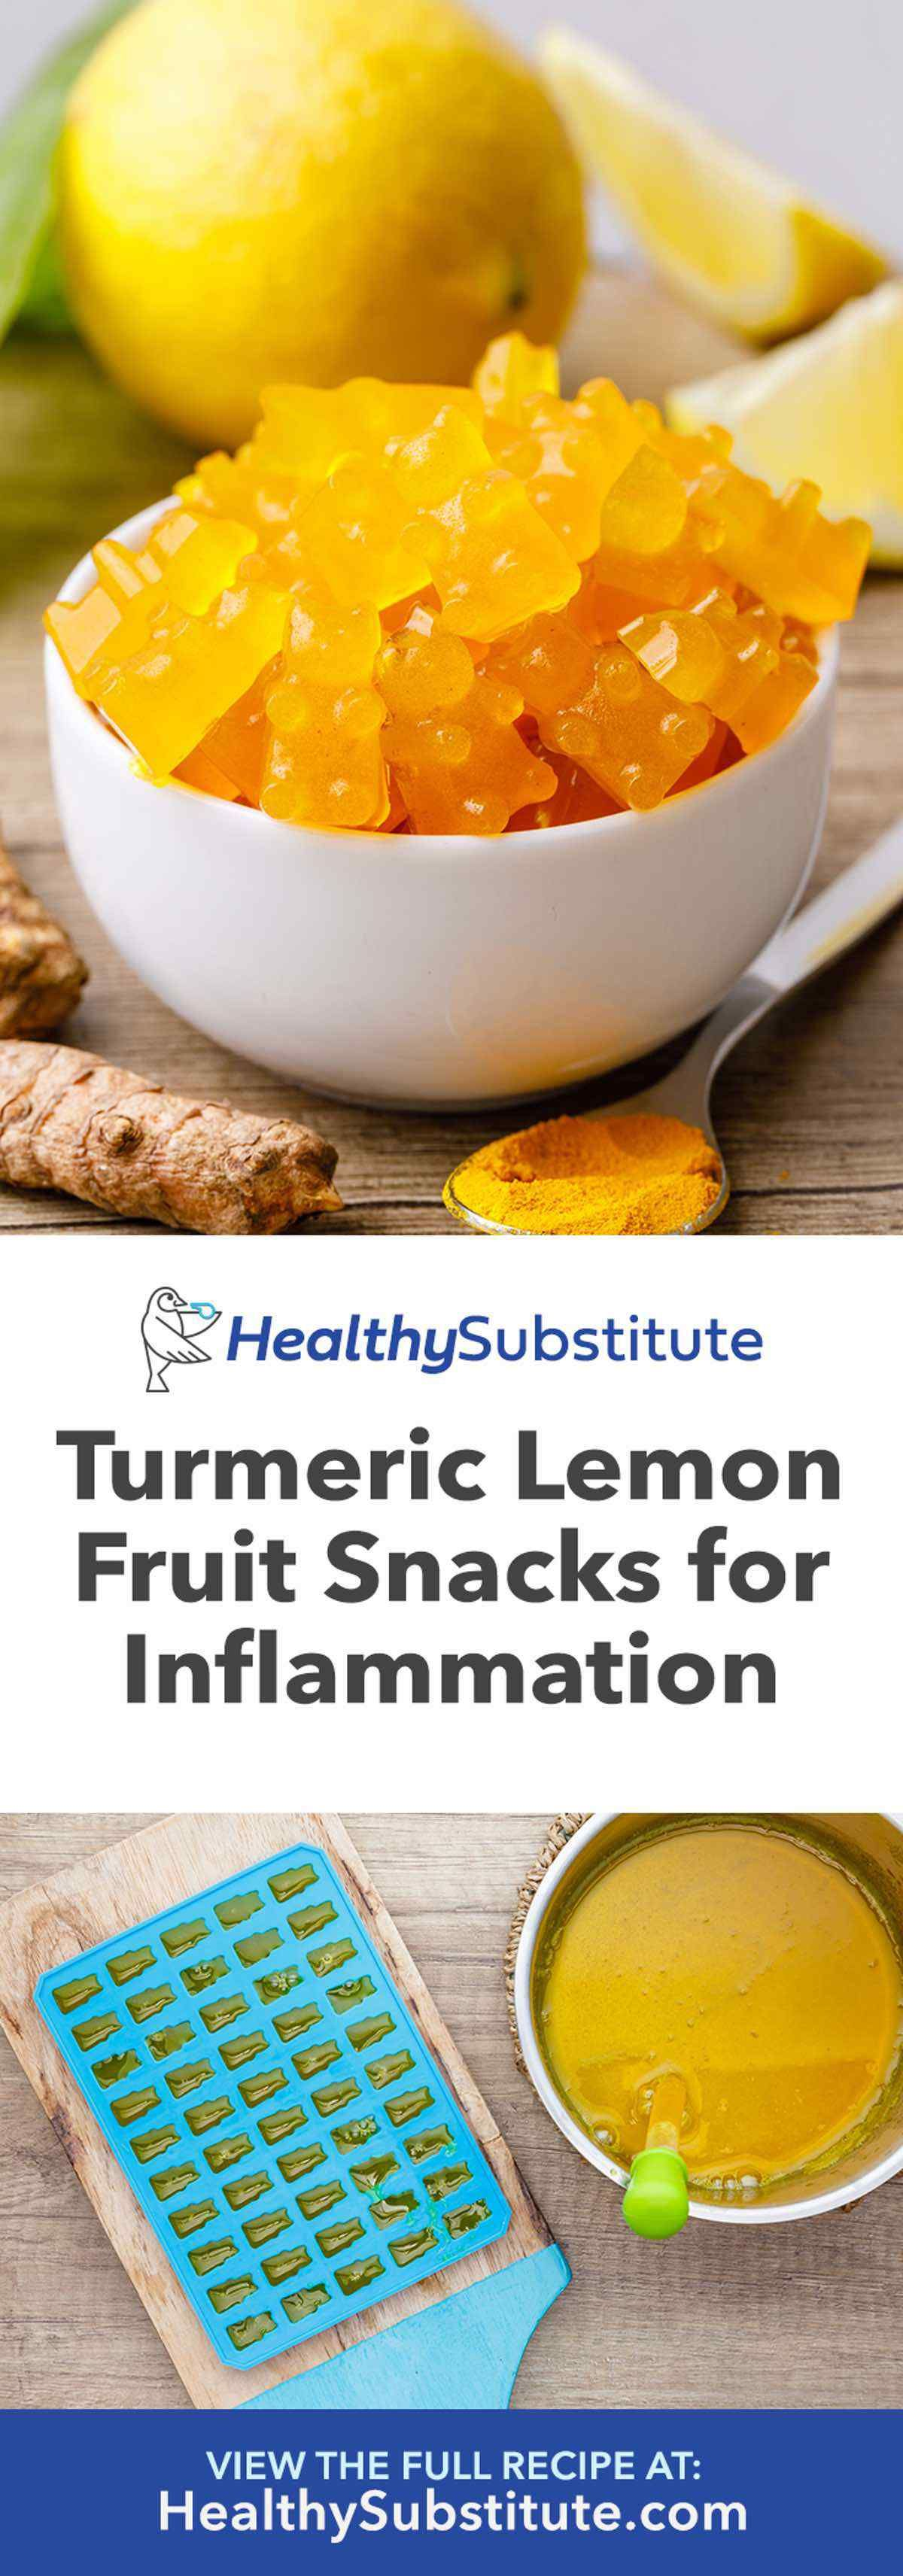 Anti-Inflammatory Turmeric Lemon Fruit Snacks - Healthy Substitute #antiinflamatoryrecipes